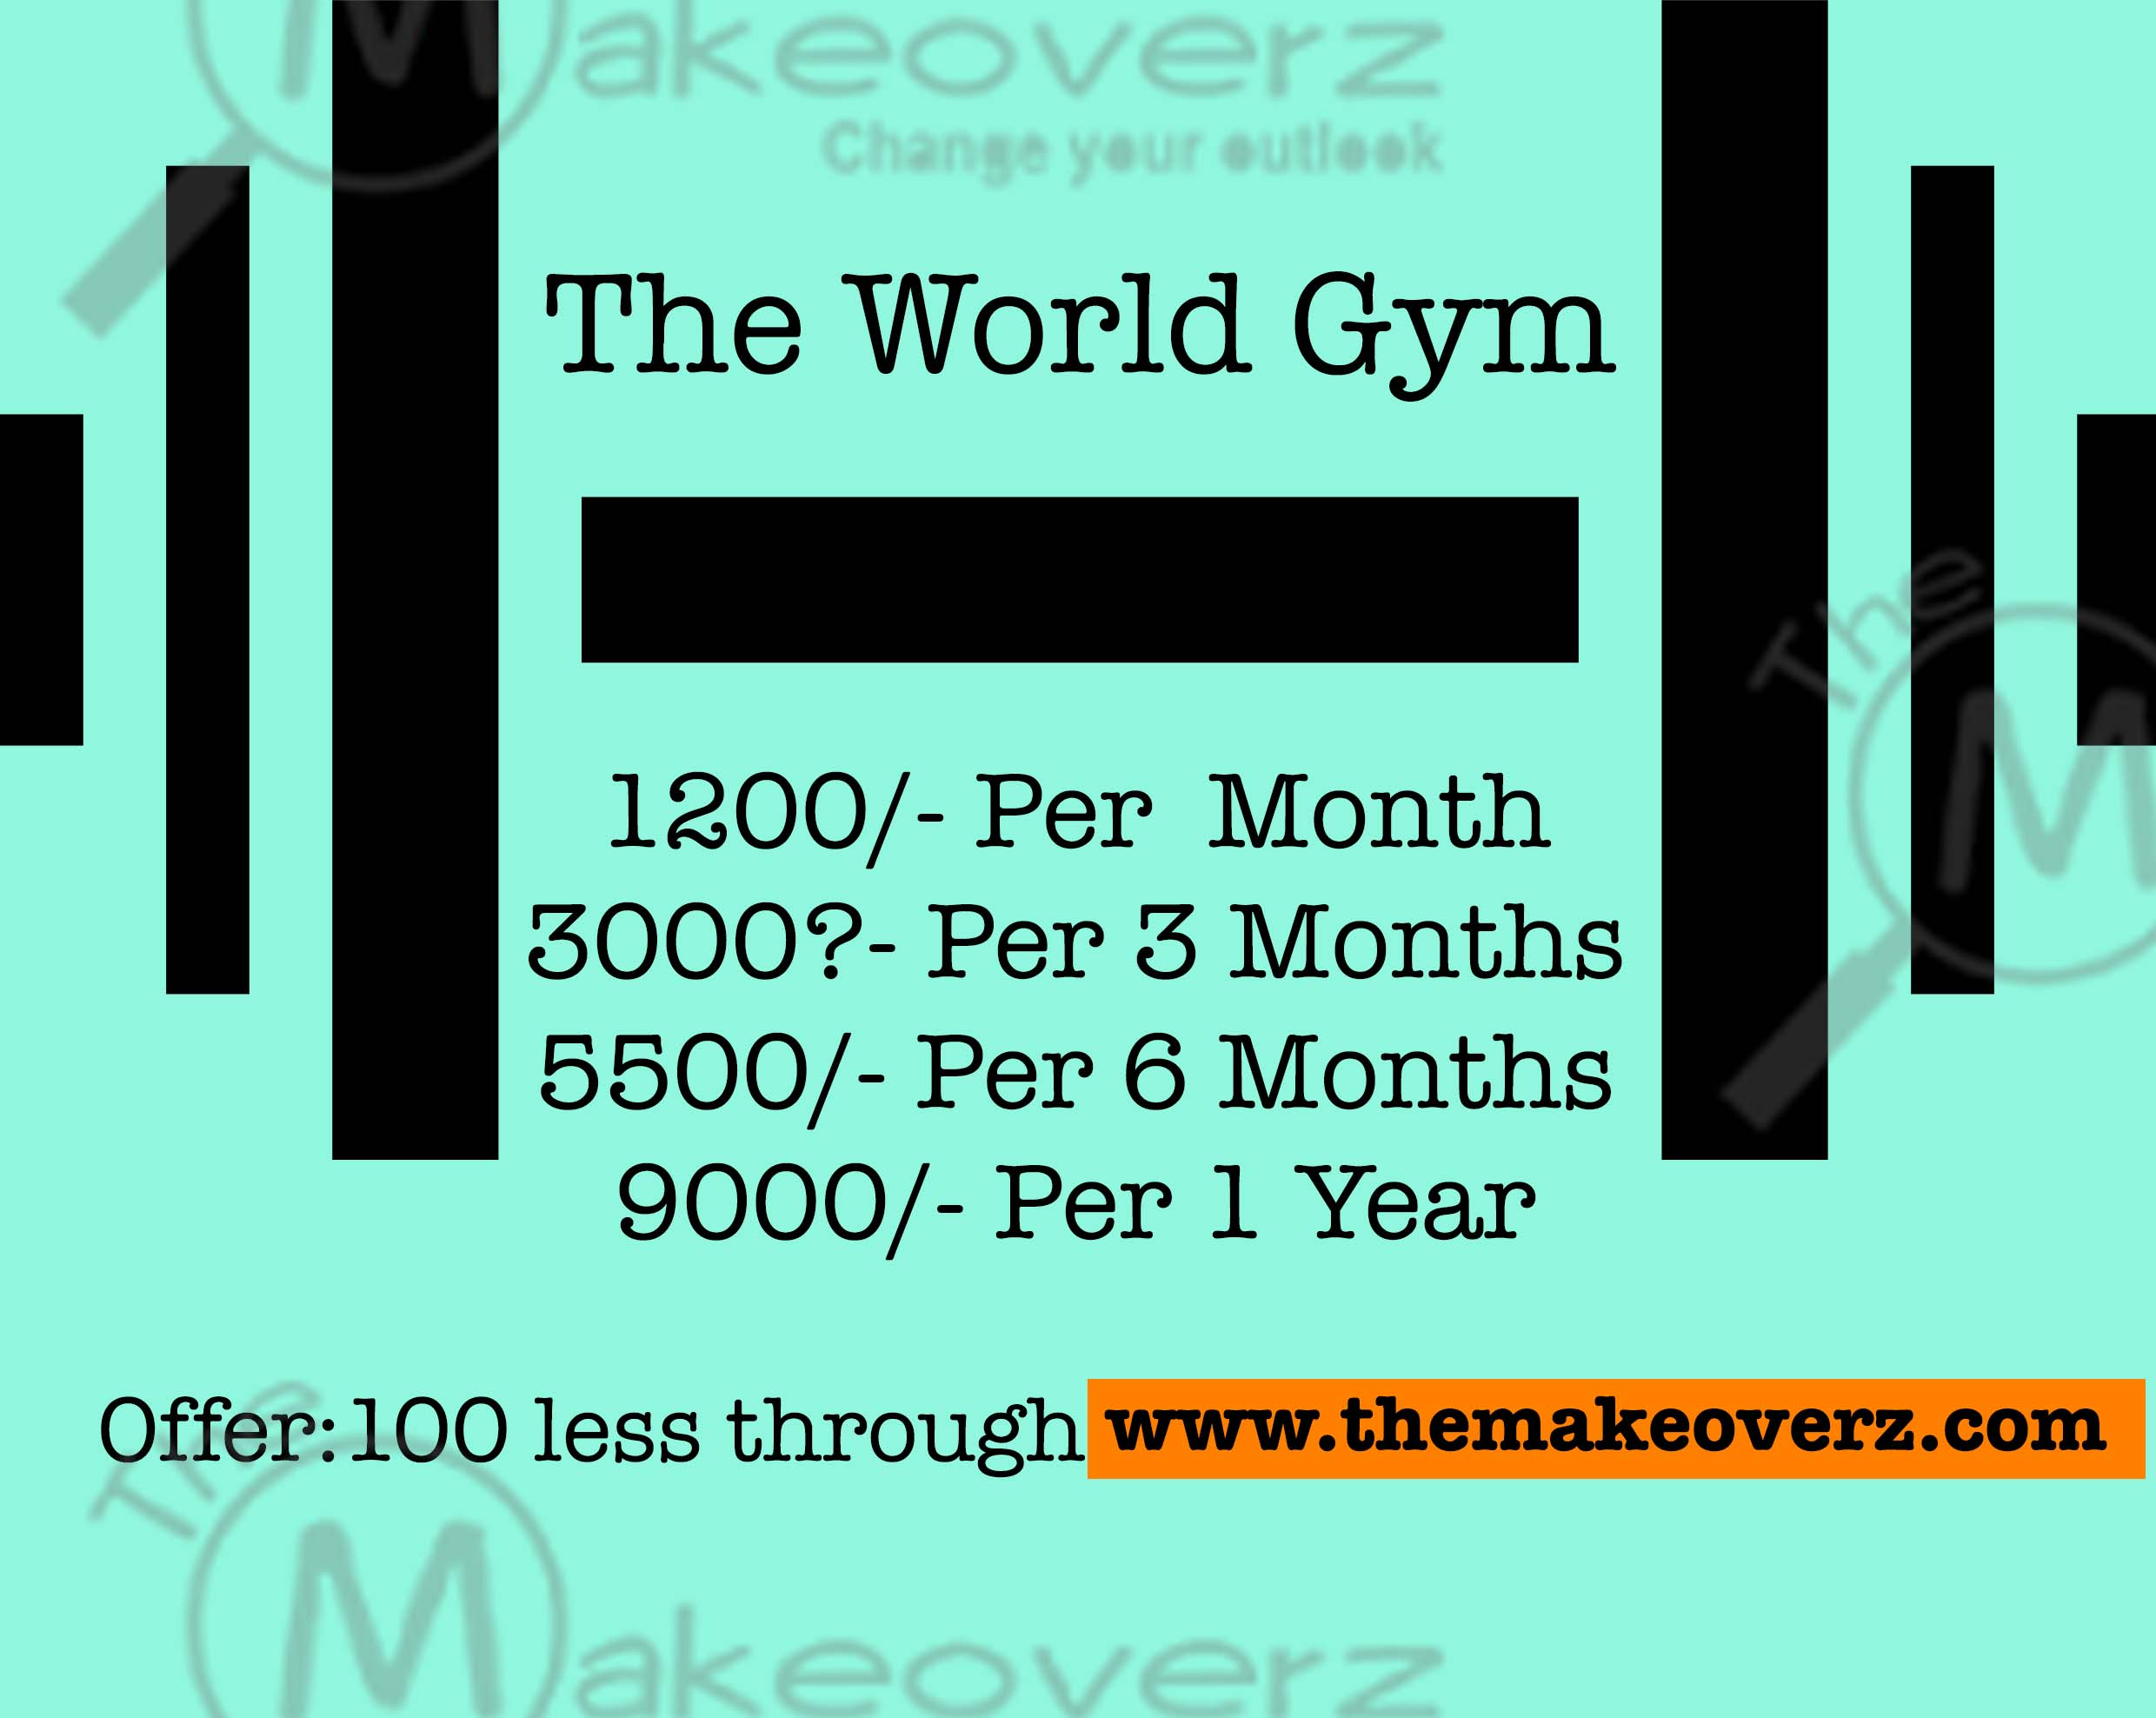 The World Gym rate plan